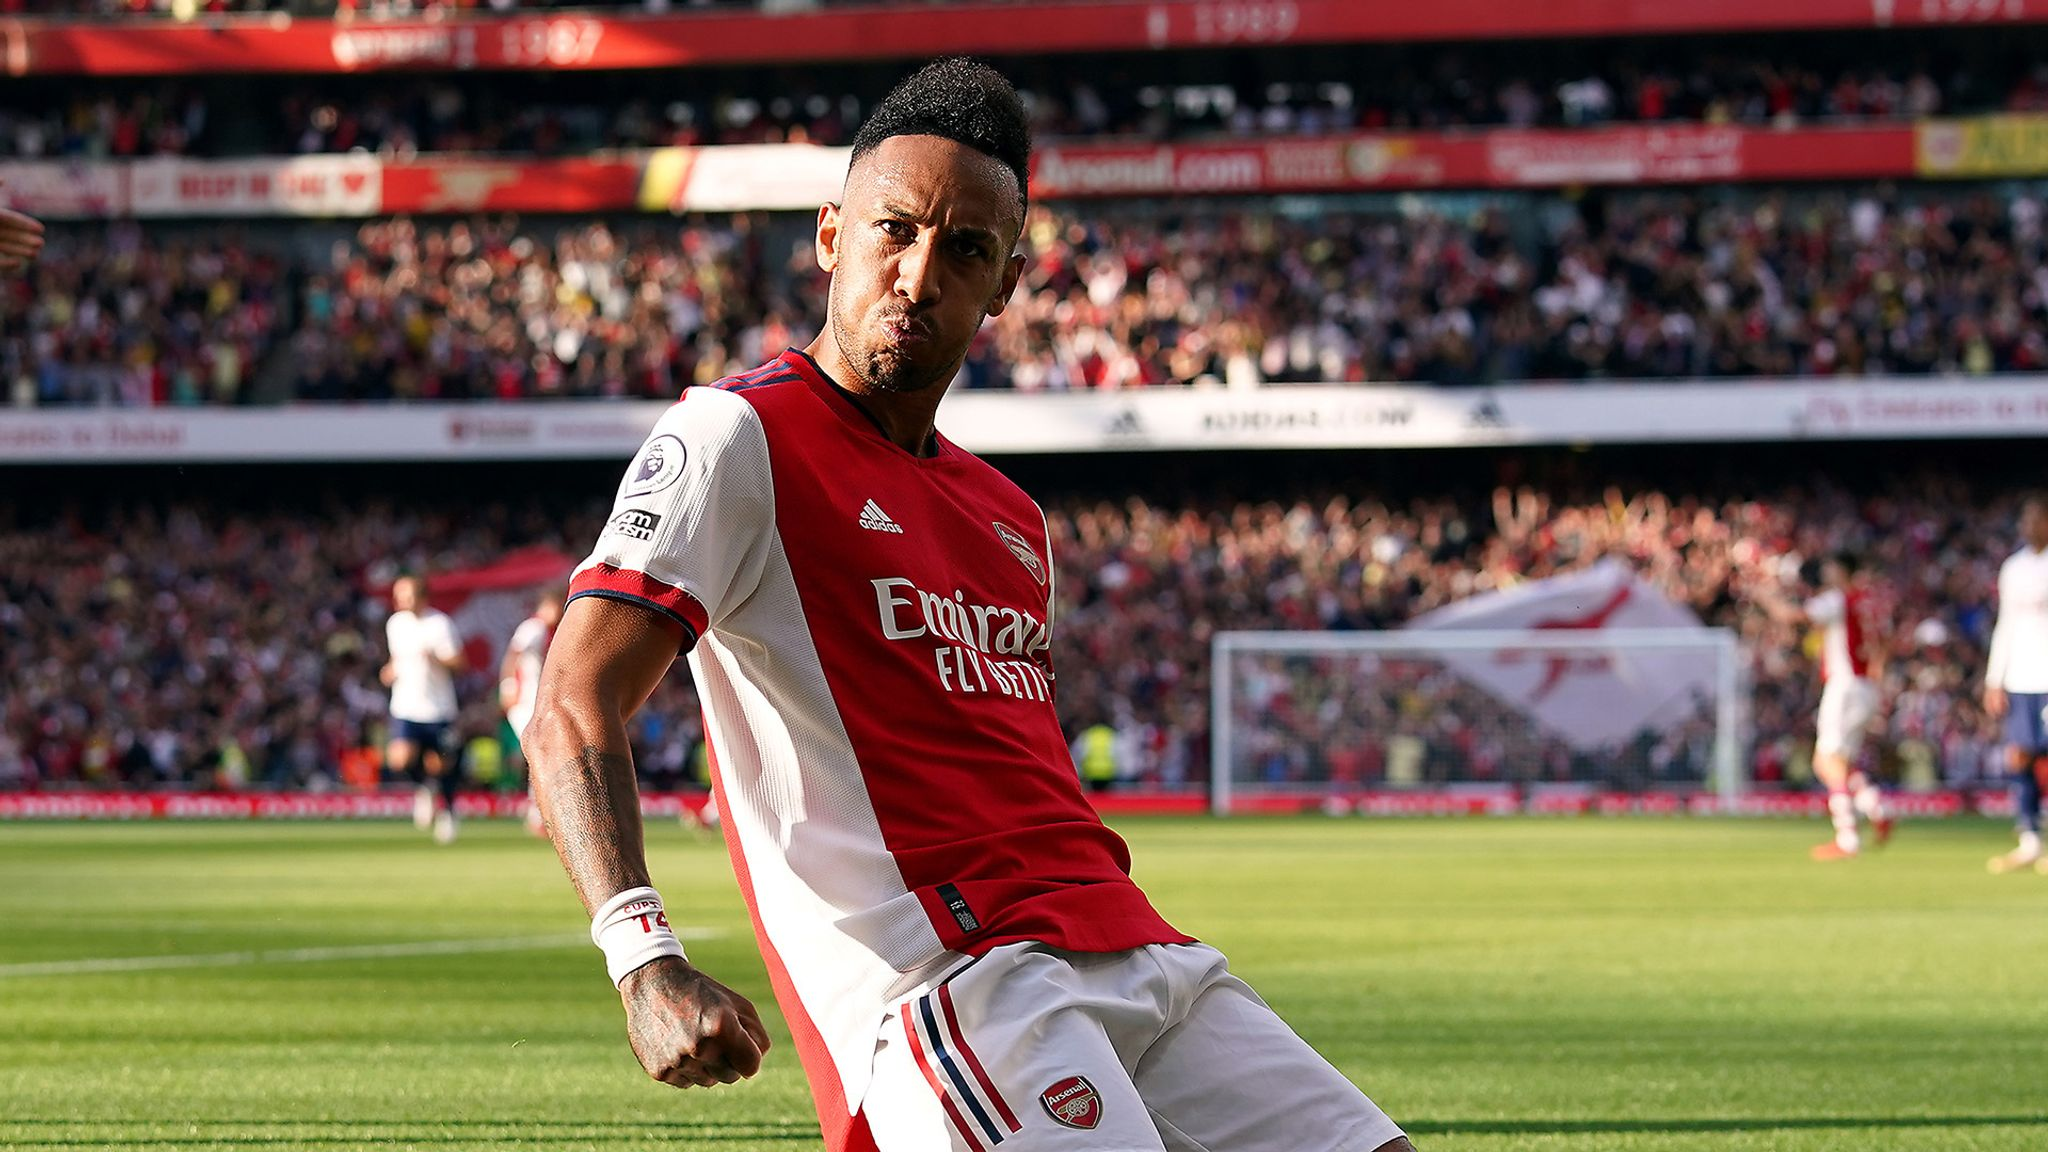 Arsenal 3-1 Tottenham: First-half blitz gives Arsenal memorable derby win over woeful Spurs